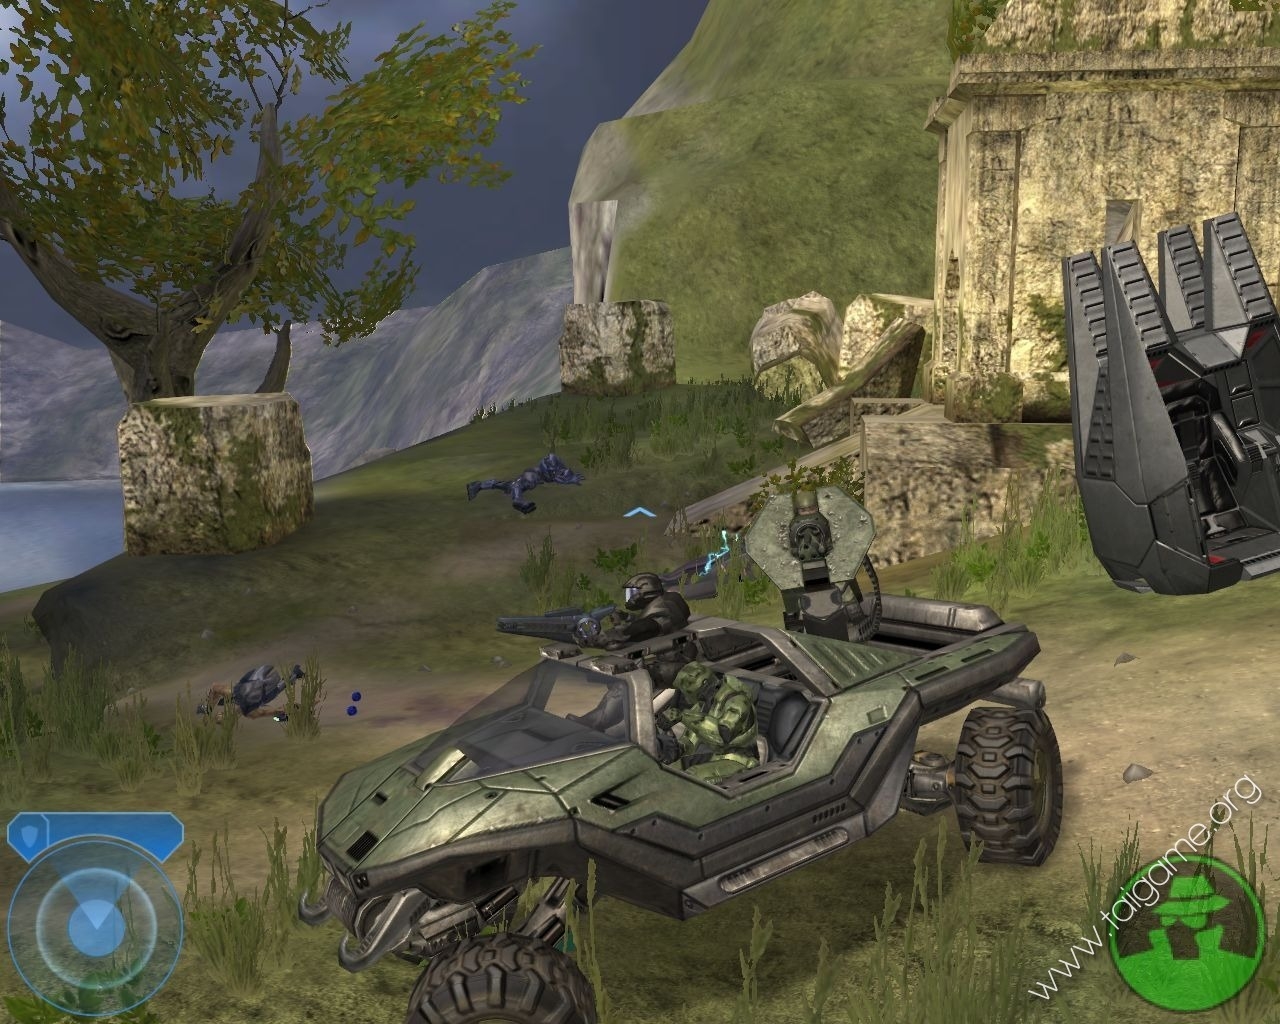 halo 2 download free full games arcade amp action games